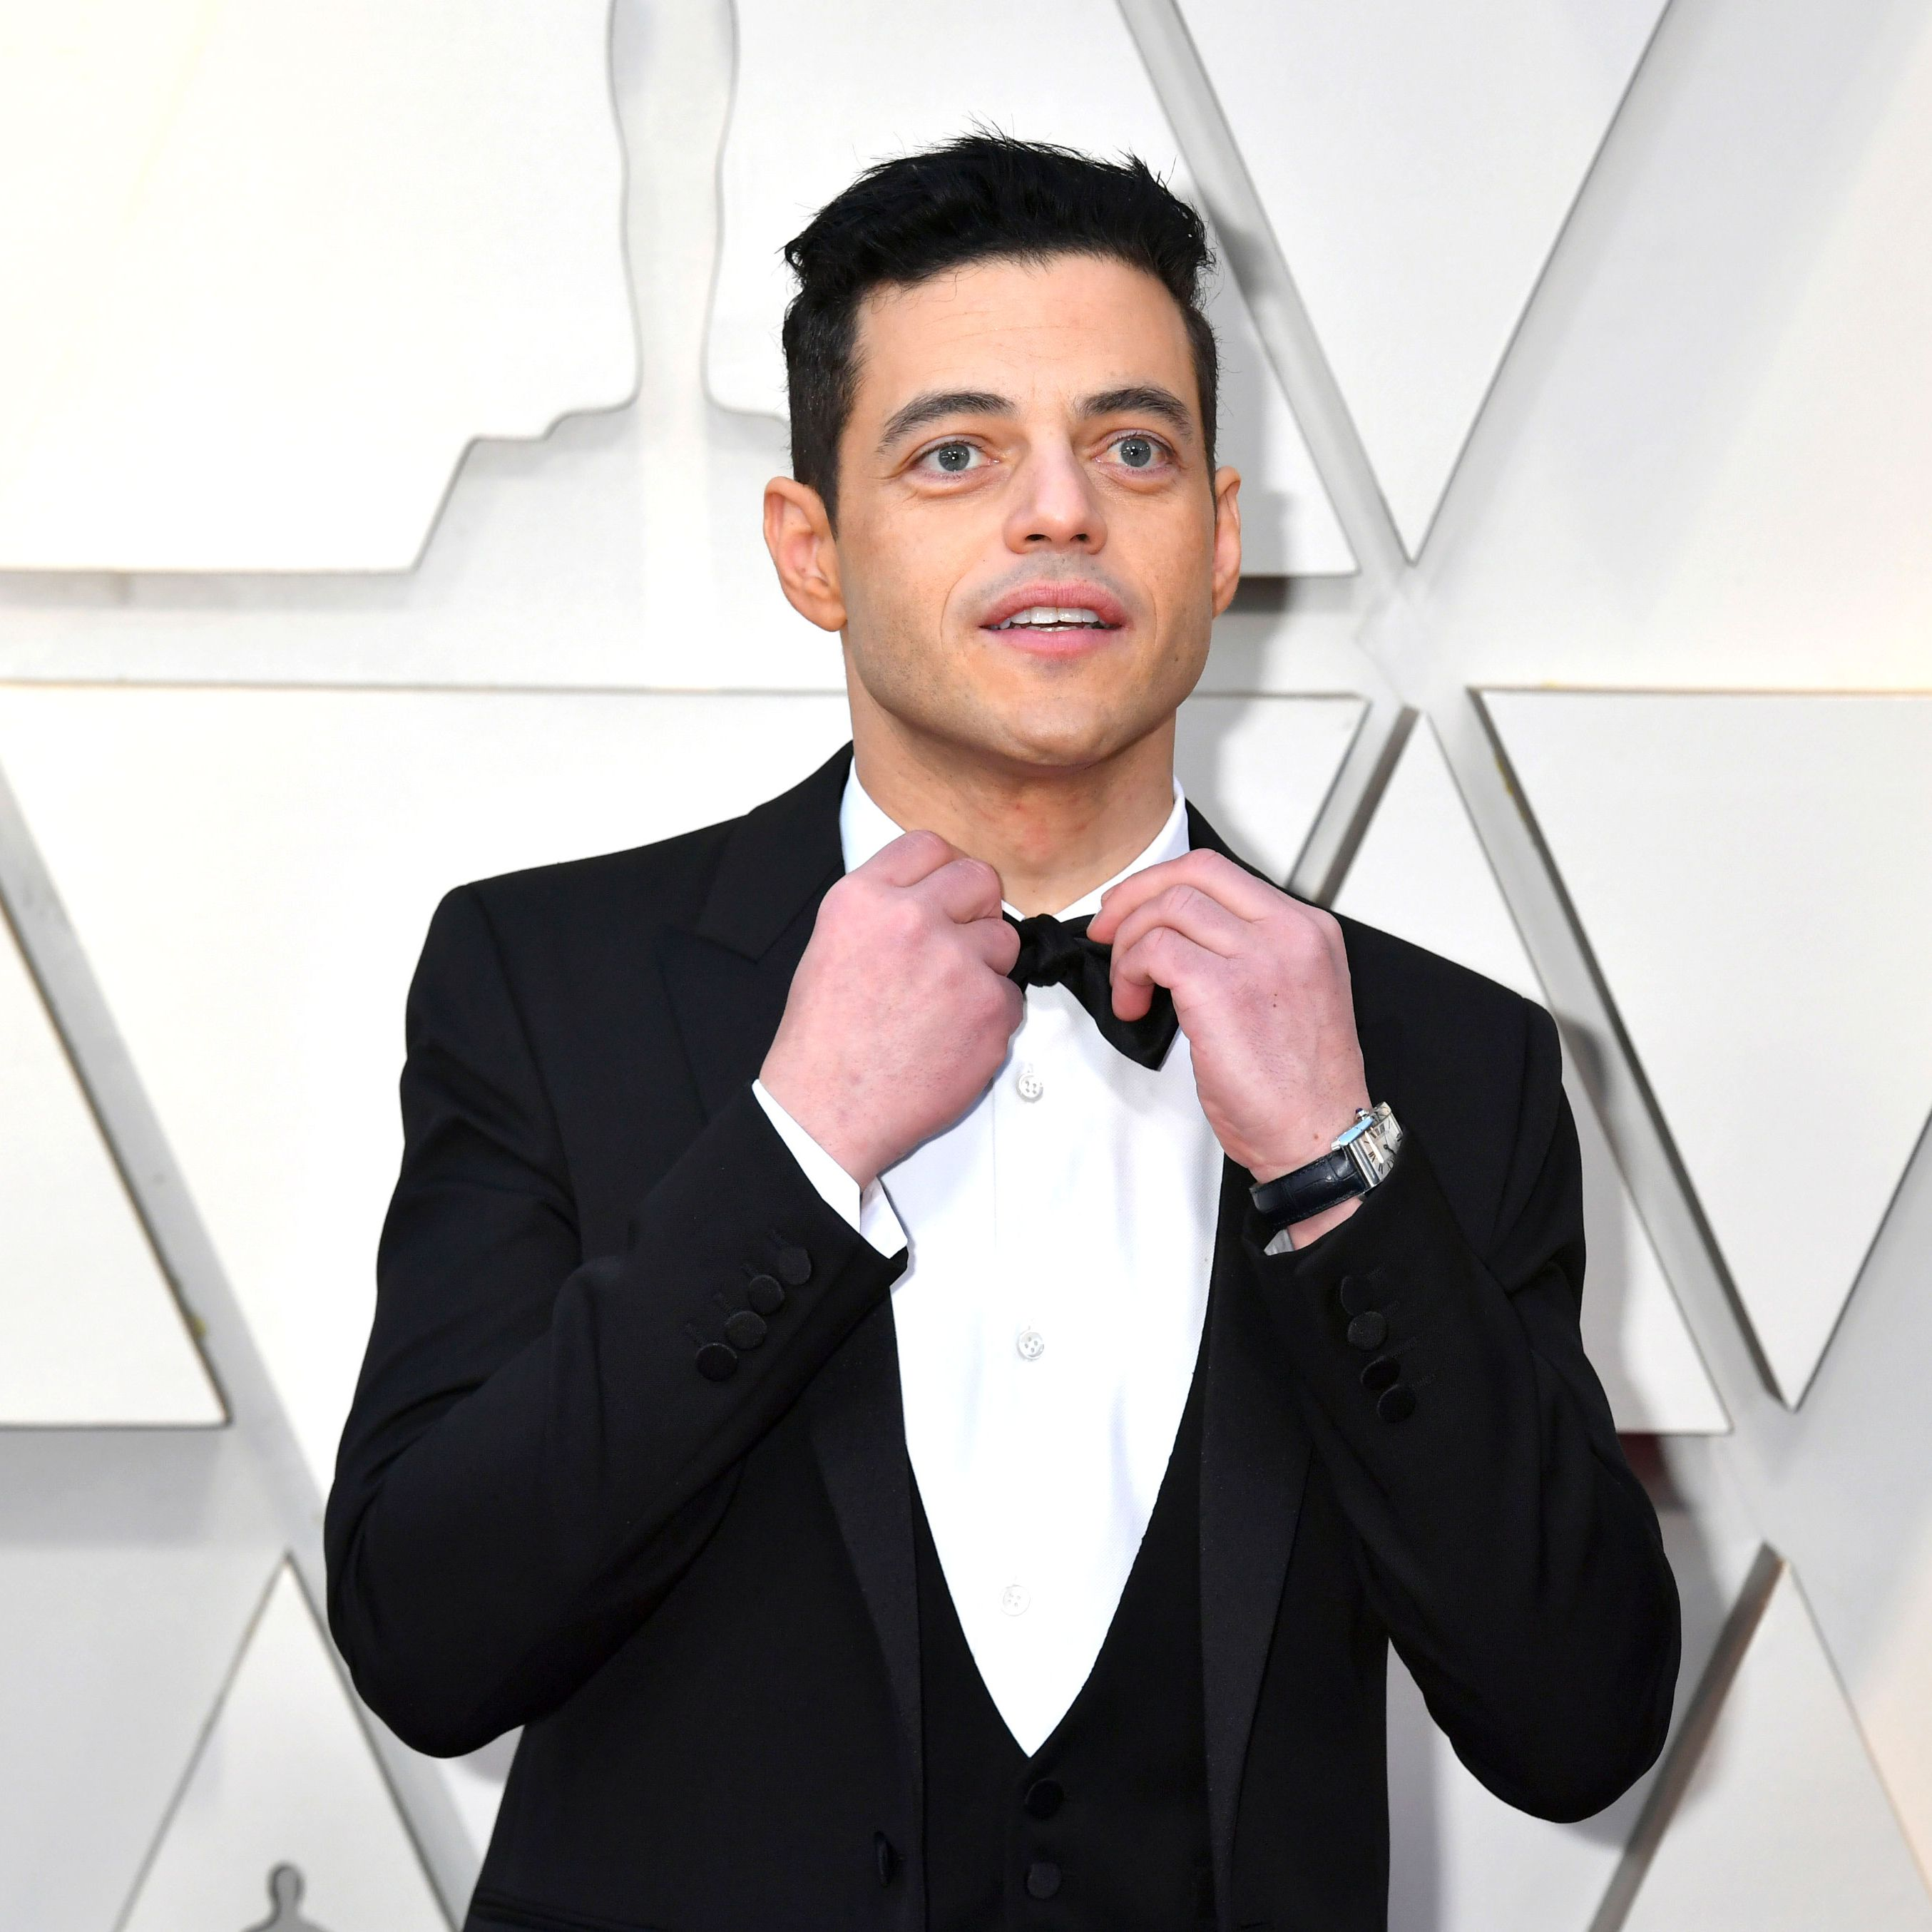 Bond 25 lines up Bohemian Rhapsody's Rami Malek as the villain